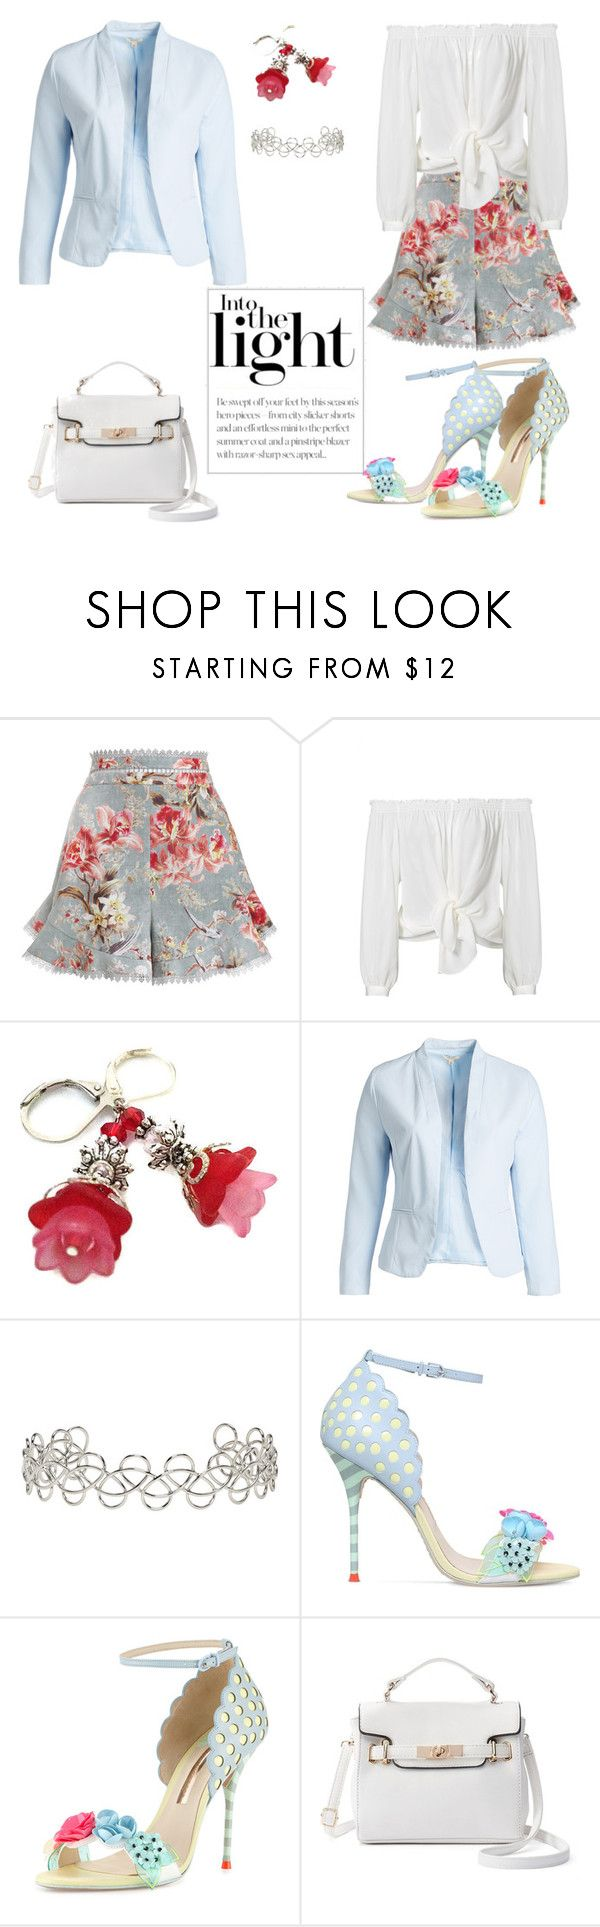 """""""pastel smart shorts"""" by louise-bailey-1 ❤ liked on Polyvore featuring Zimmermann, Nicole Miller, Blu Pepper, Acne Studios, Sophia Webster, shorts, showsomeshoulder and plus size clothing"""